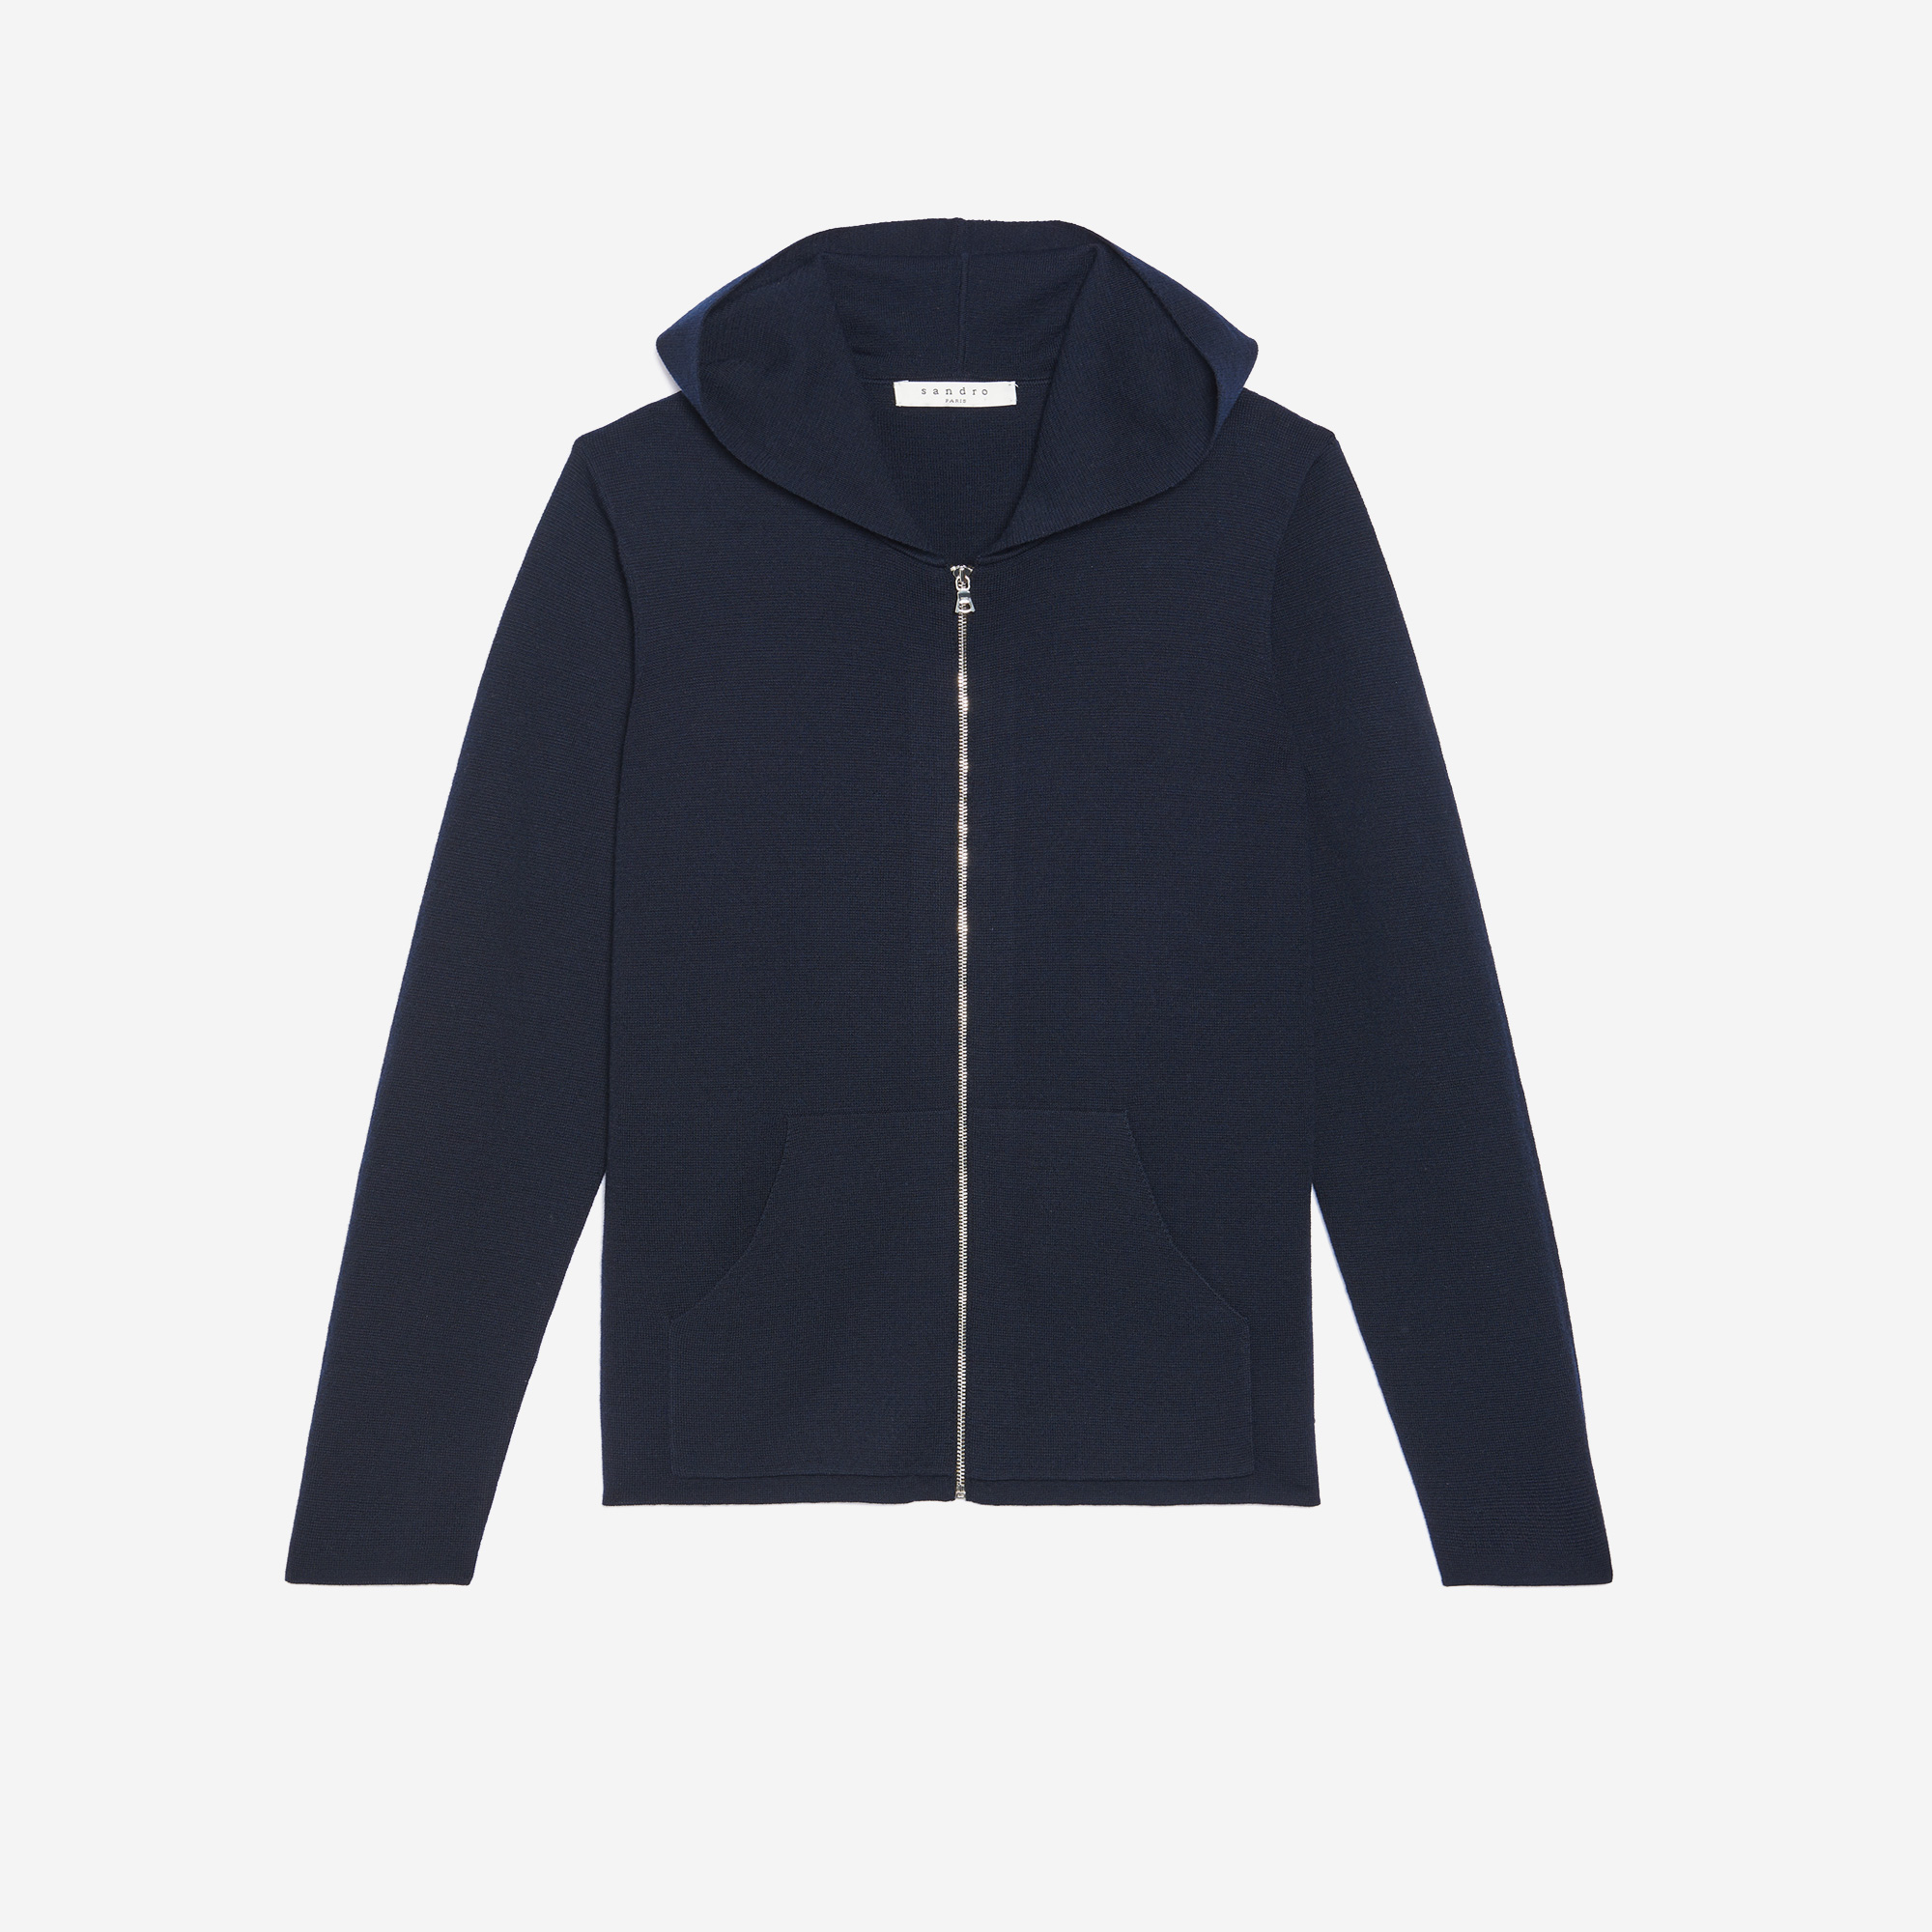 Merino wool hooded cardigan - All selection - Sandro-paris.com